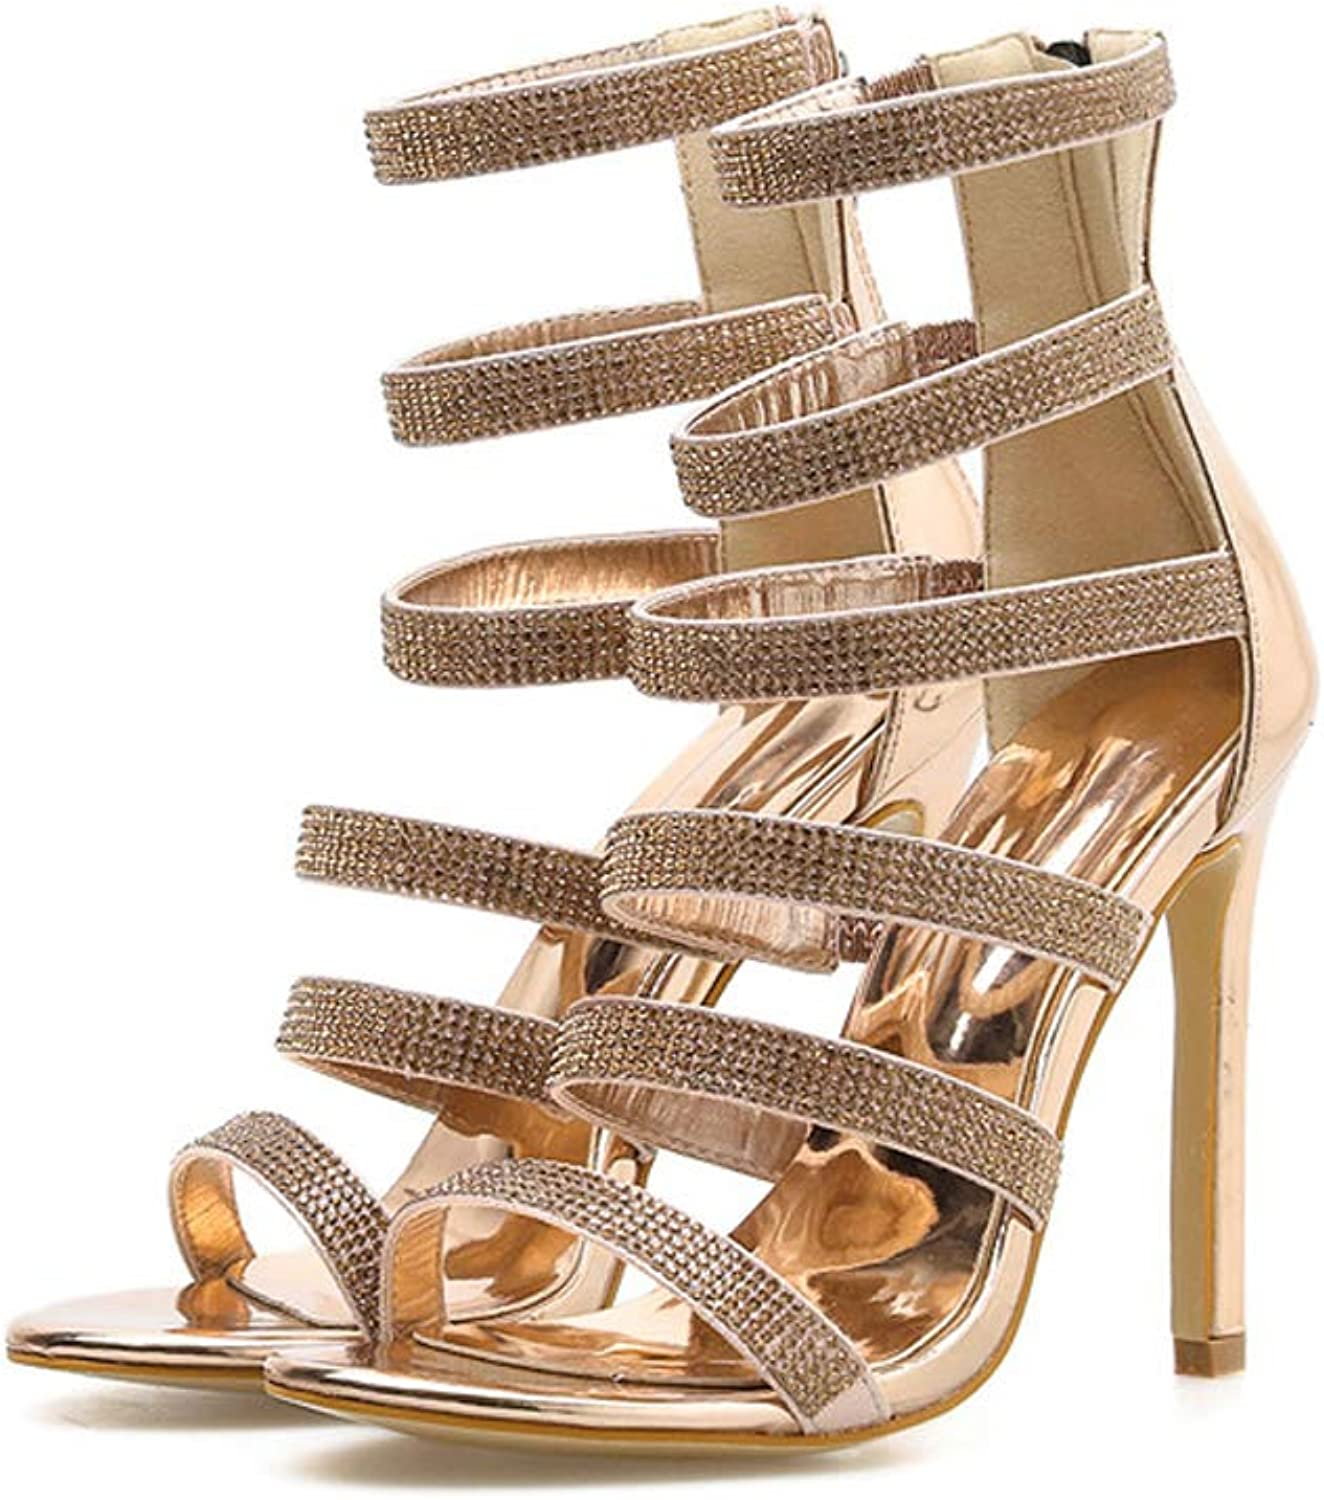 Women's Round-Toe shoes Summer High Heels Ladies Party Evening Sandals Leisure Lace-up Sandals